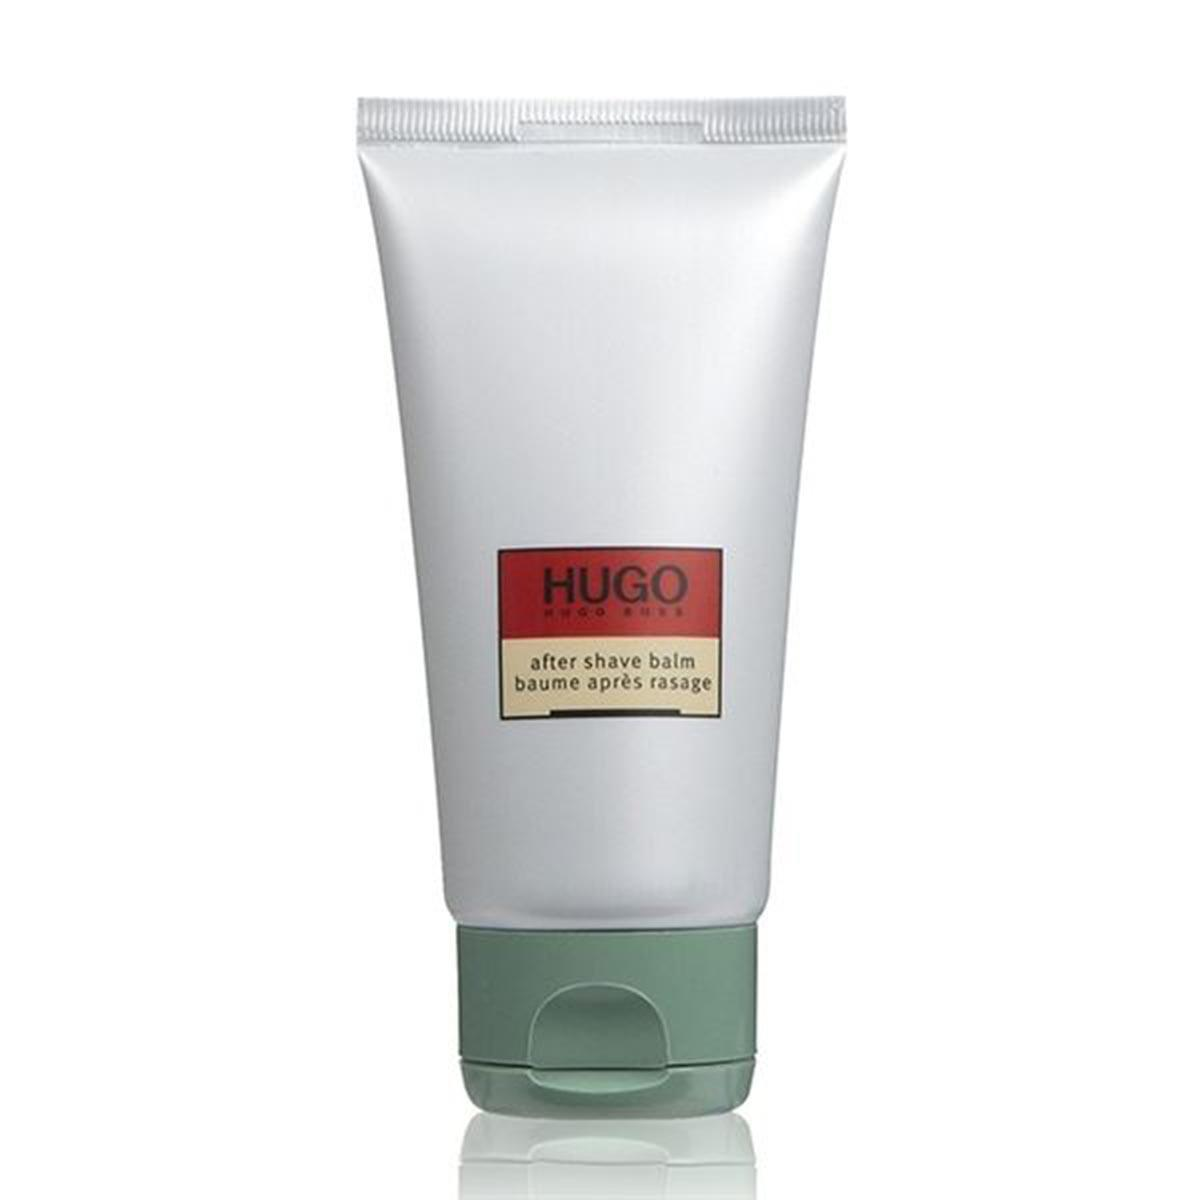 Hugo After Shave Balm 75 ml